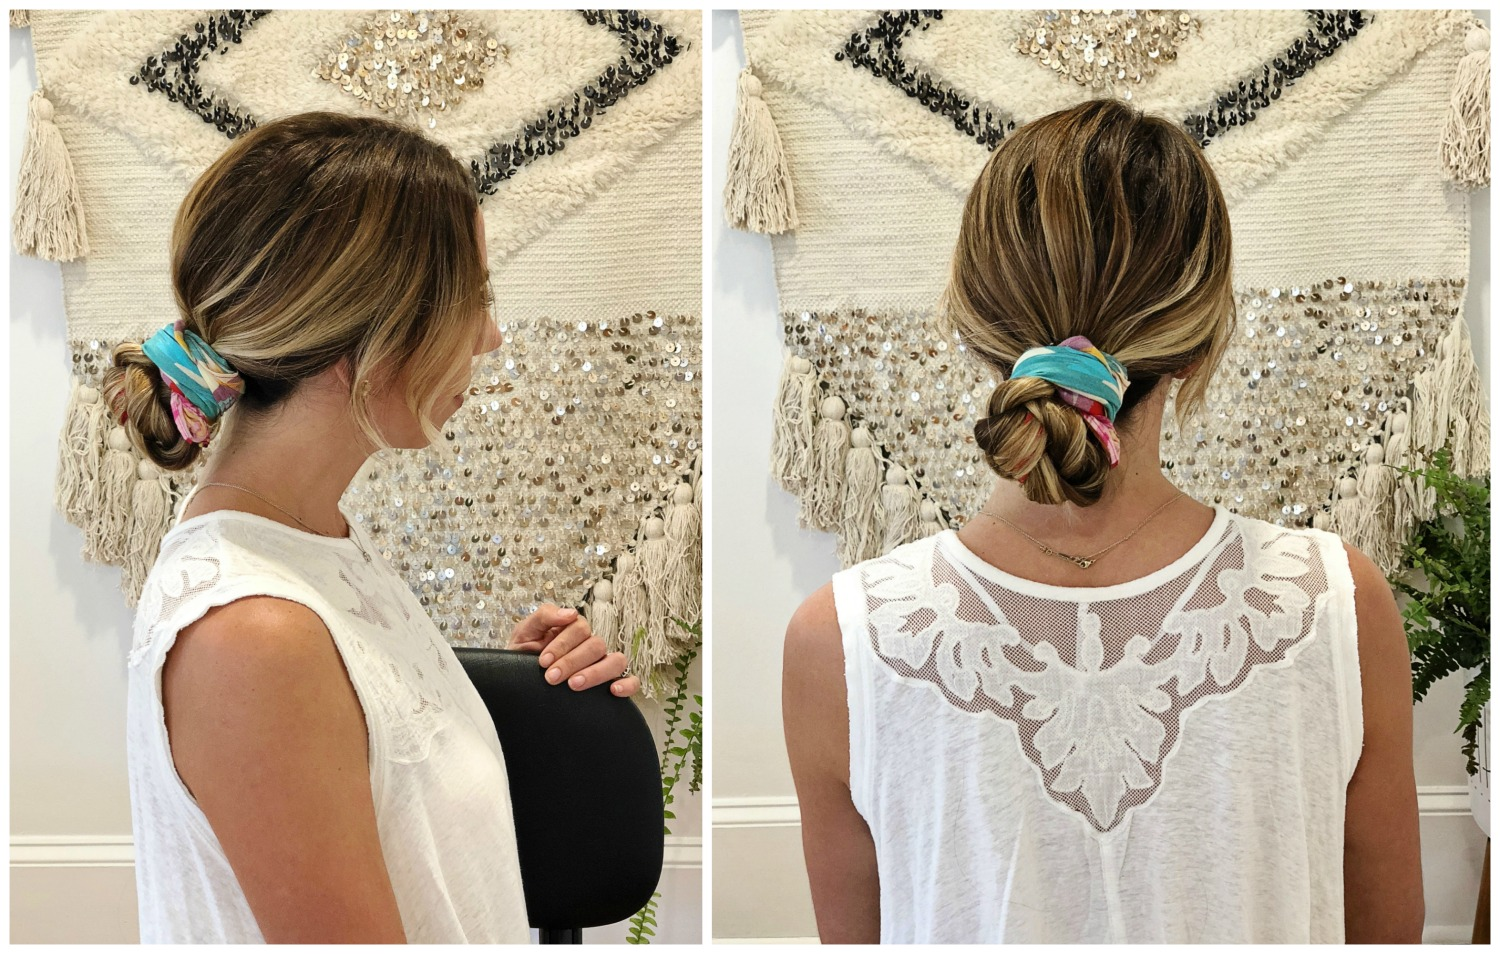 The Motherchic summer hair style